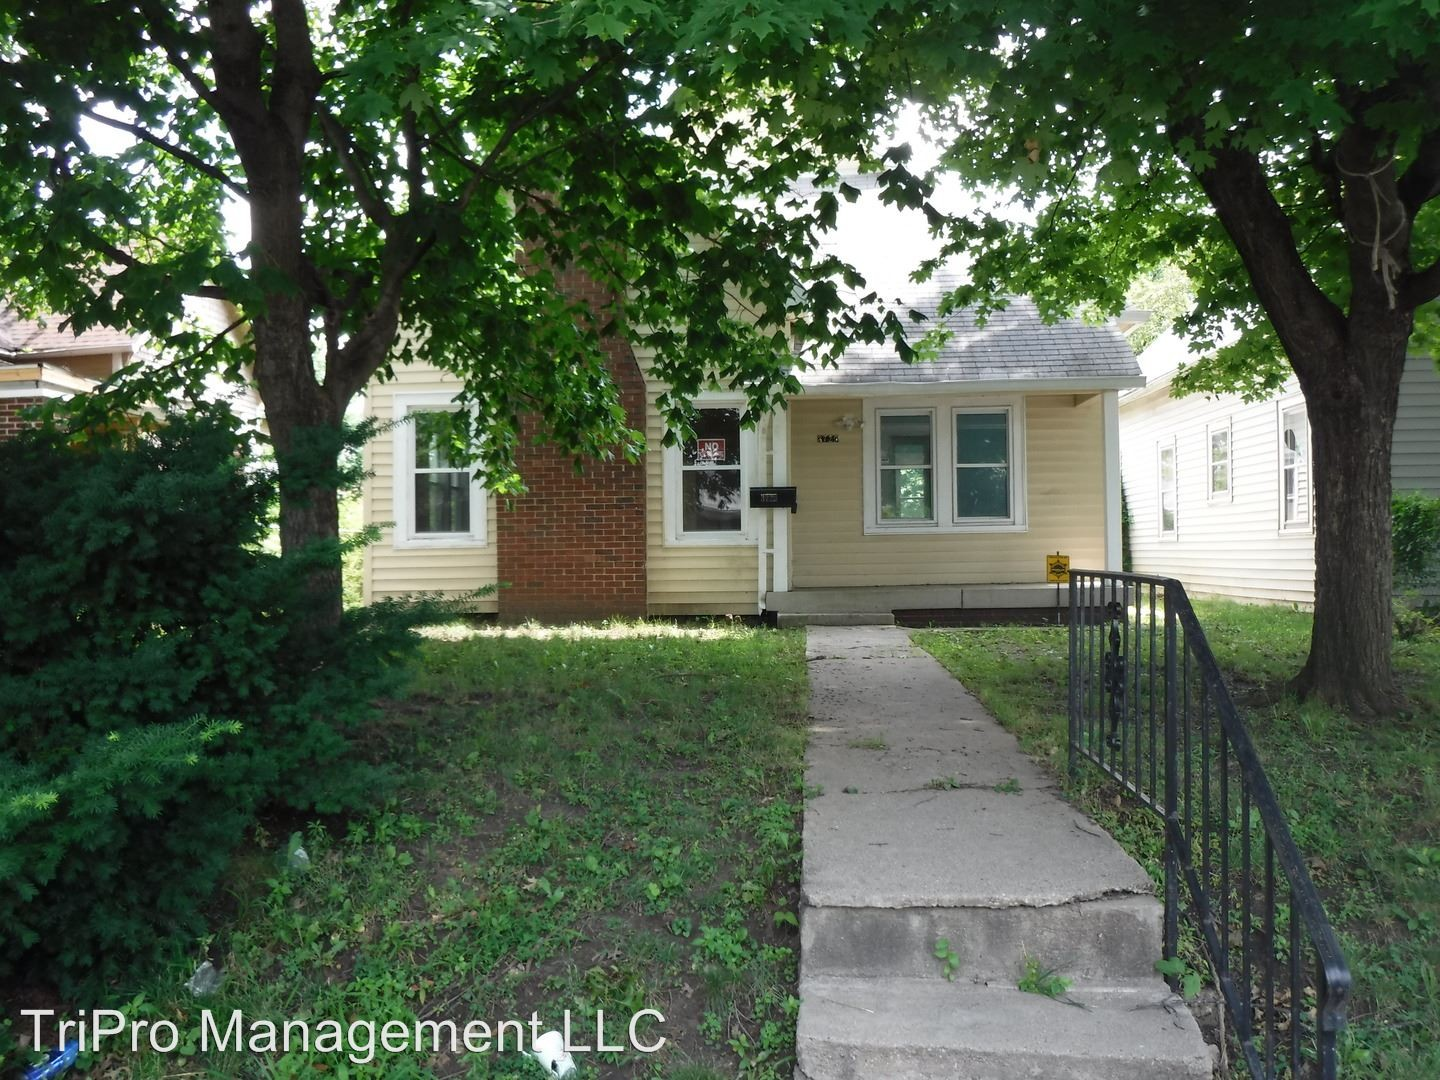 3729 N Capitol Ave Indianapolis In 46208 2 Bedroom House For Rent For 695 Month Zumper